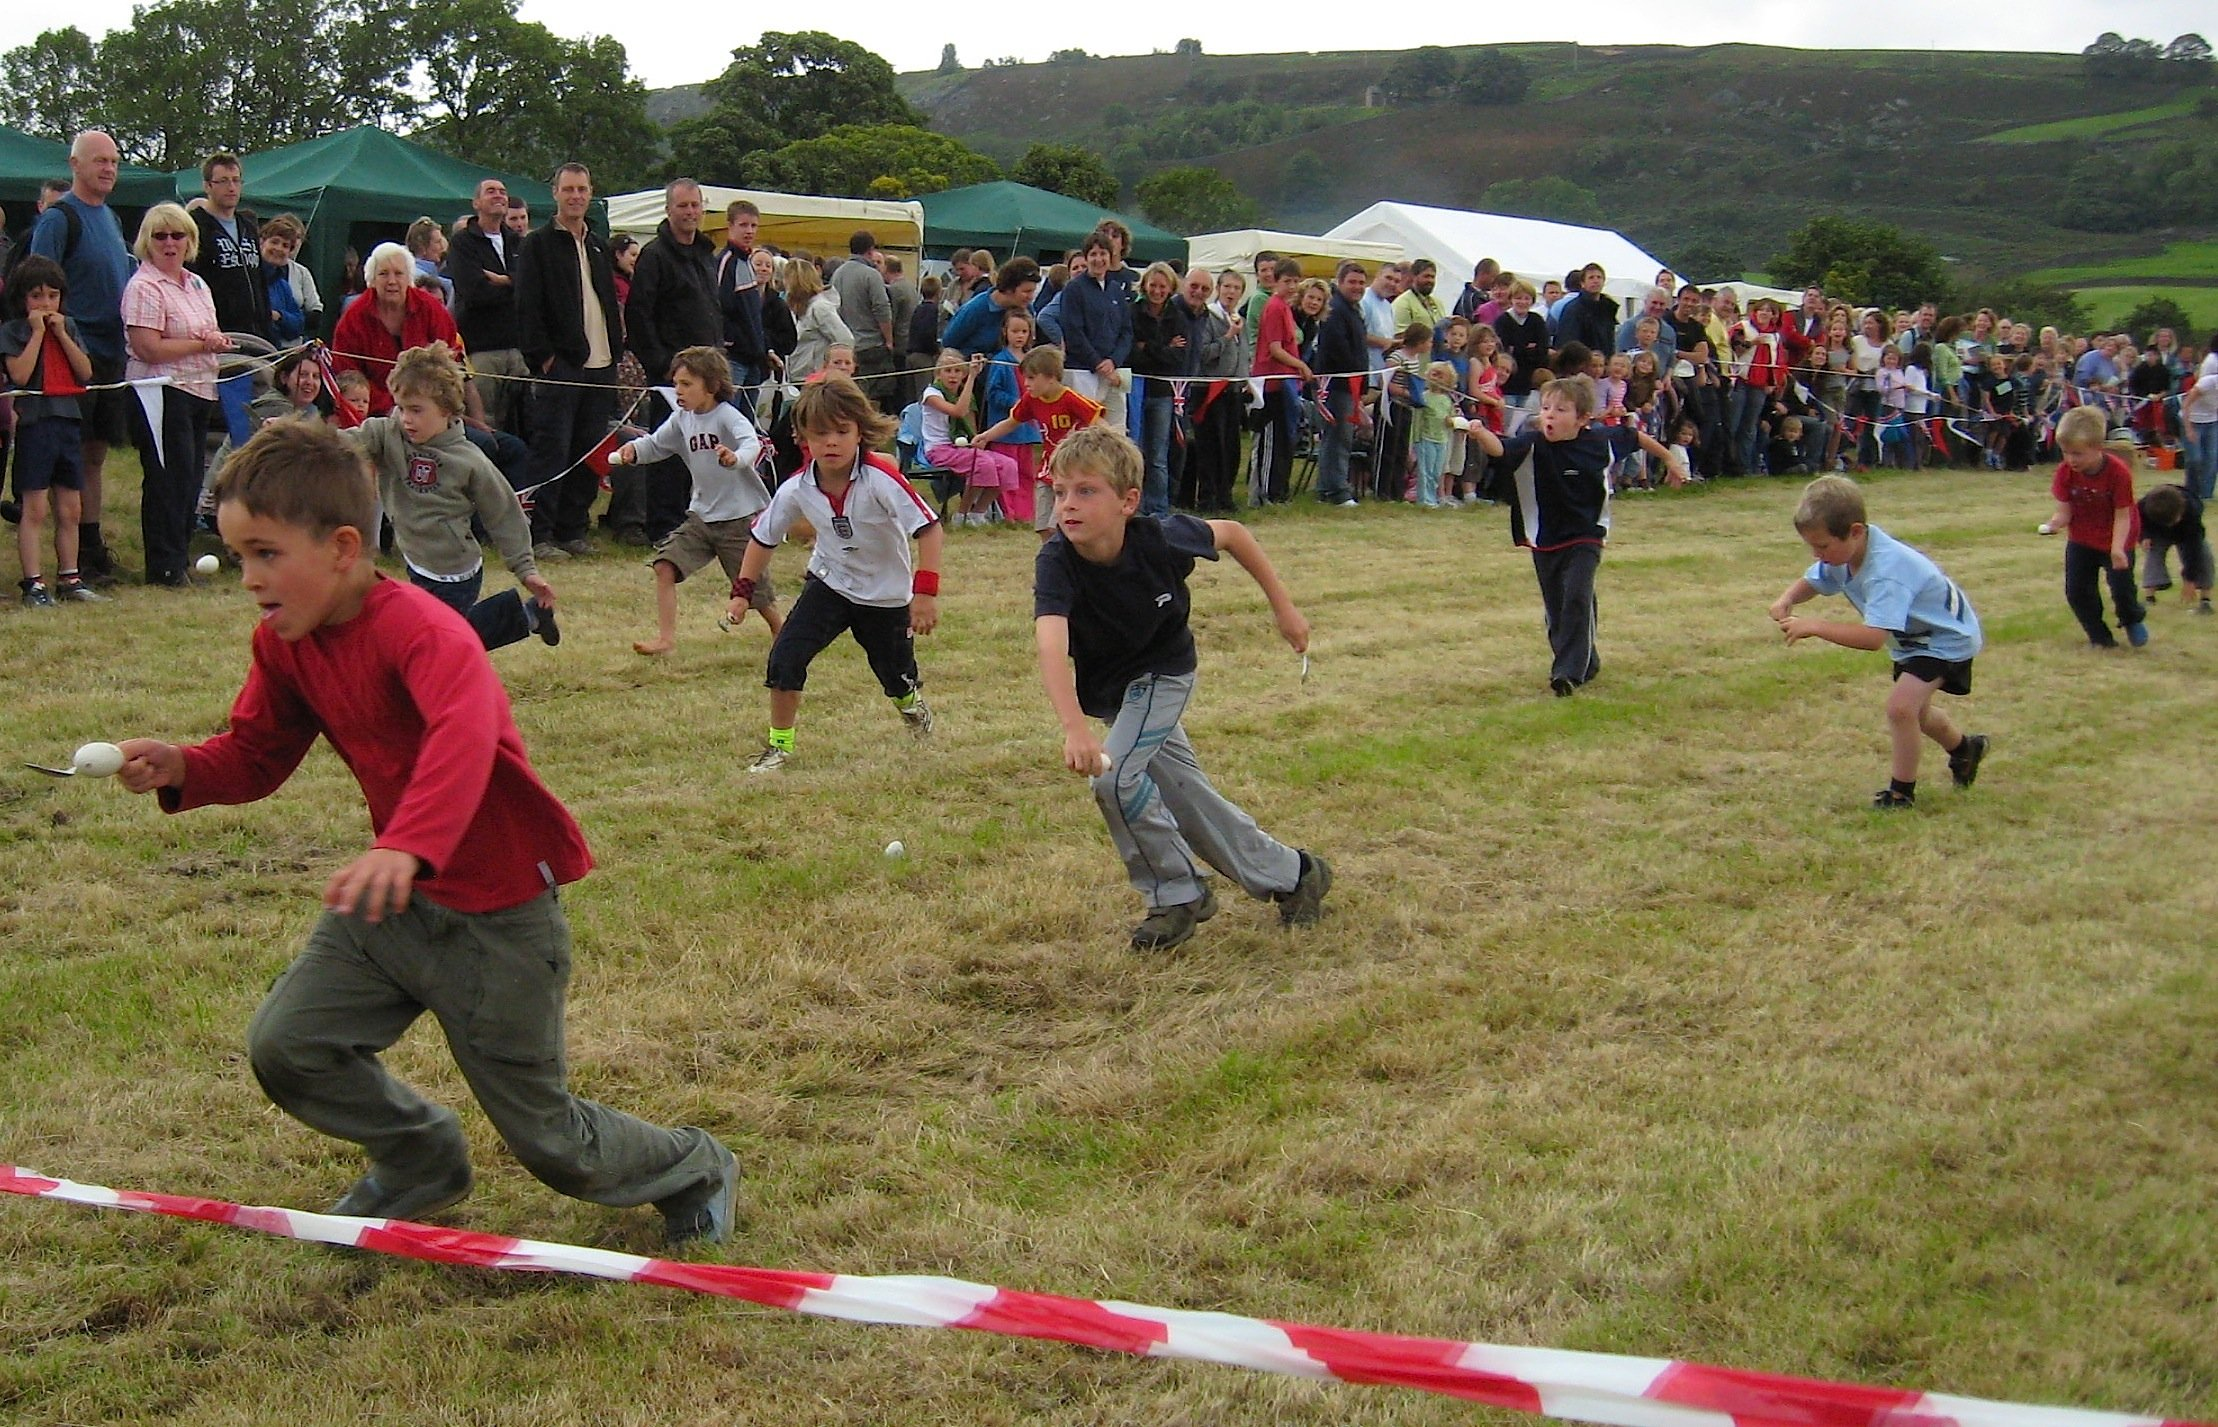 Egg spoon finish line How Many Of These School Sports Day Events Did You Take Part In Growing Up?